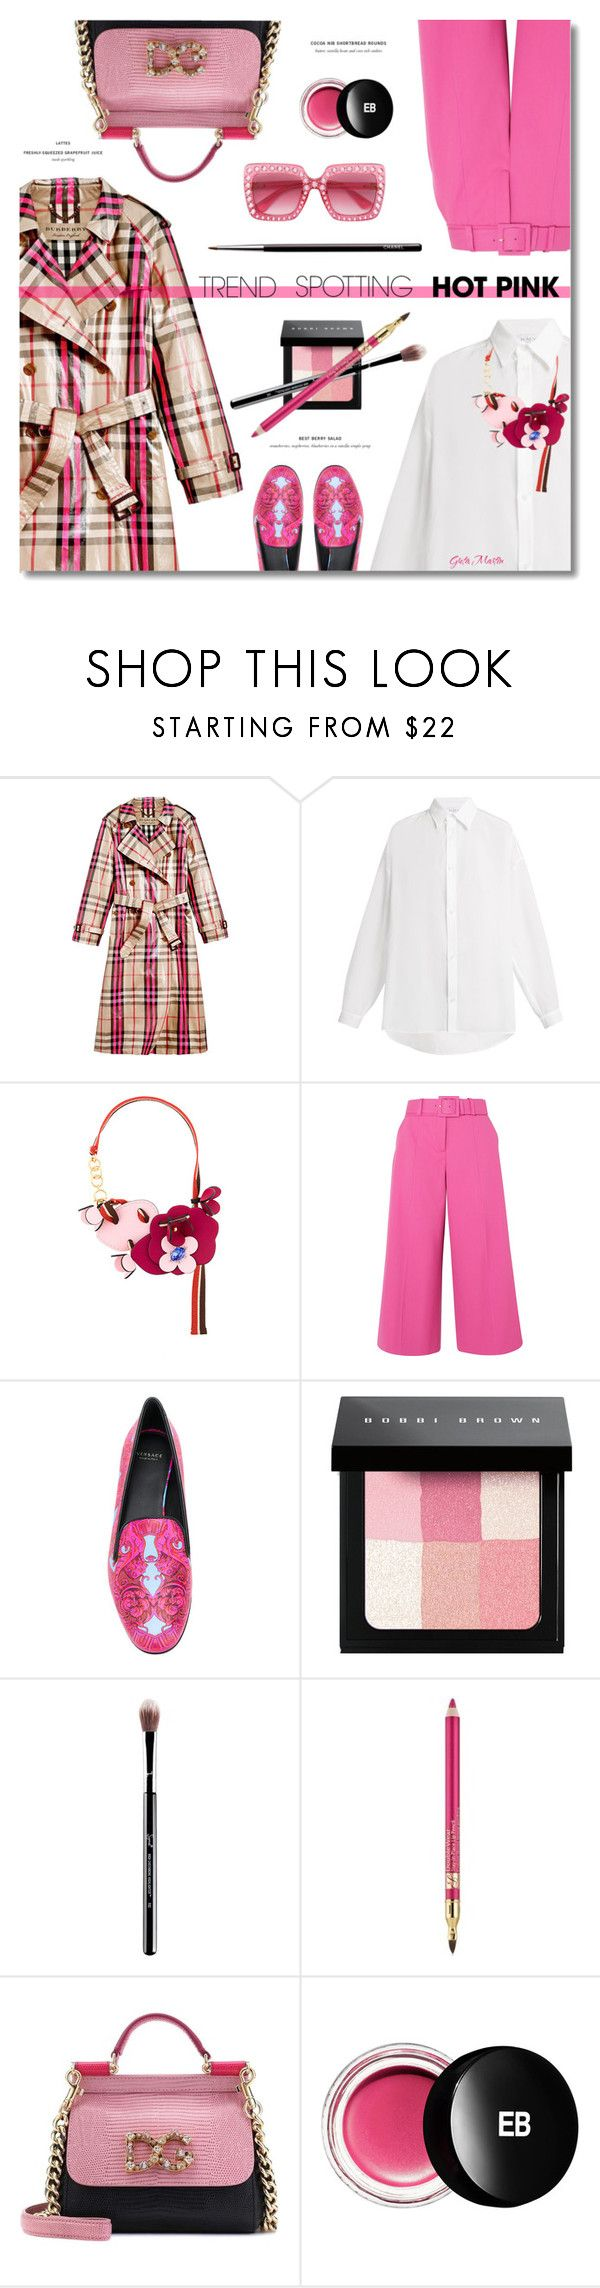 """NYFW Trend Spotting: Hot Pink ... 2018"" by greta-martin on Polyvore featuring Burberry, Raey, Marni, Oscar de la Renta, Versace, Bobbi Brown Cosmetics, Estée Lauder, Dolce&Gabbana, Edward Bess and Gucci"